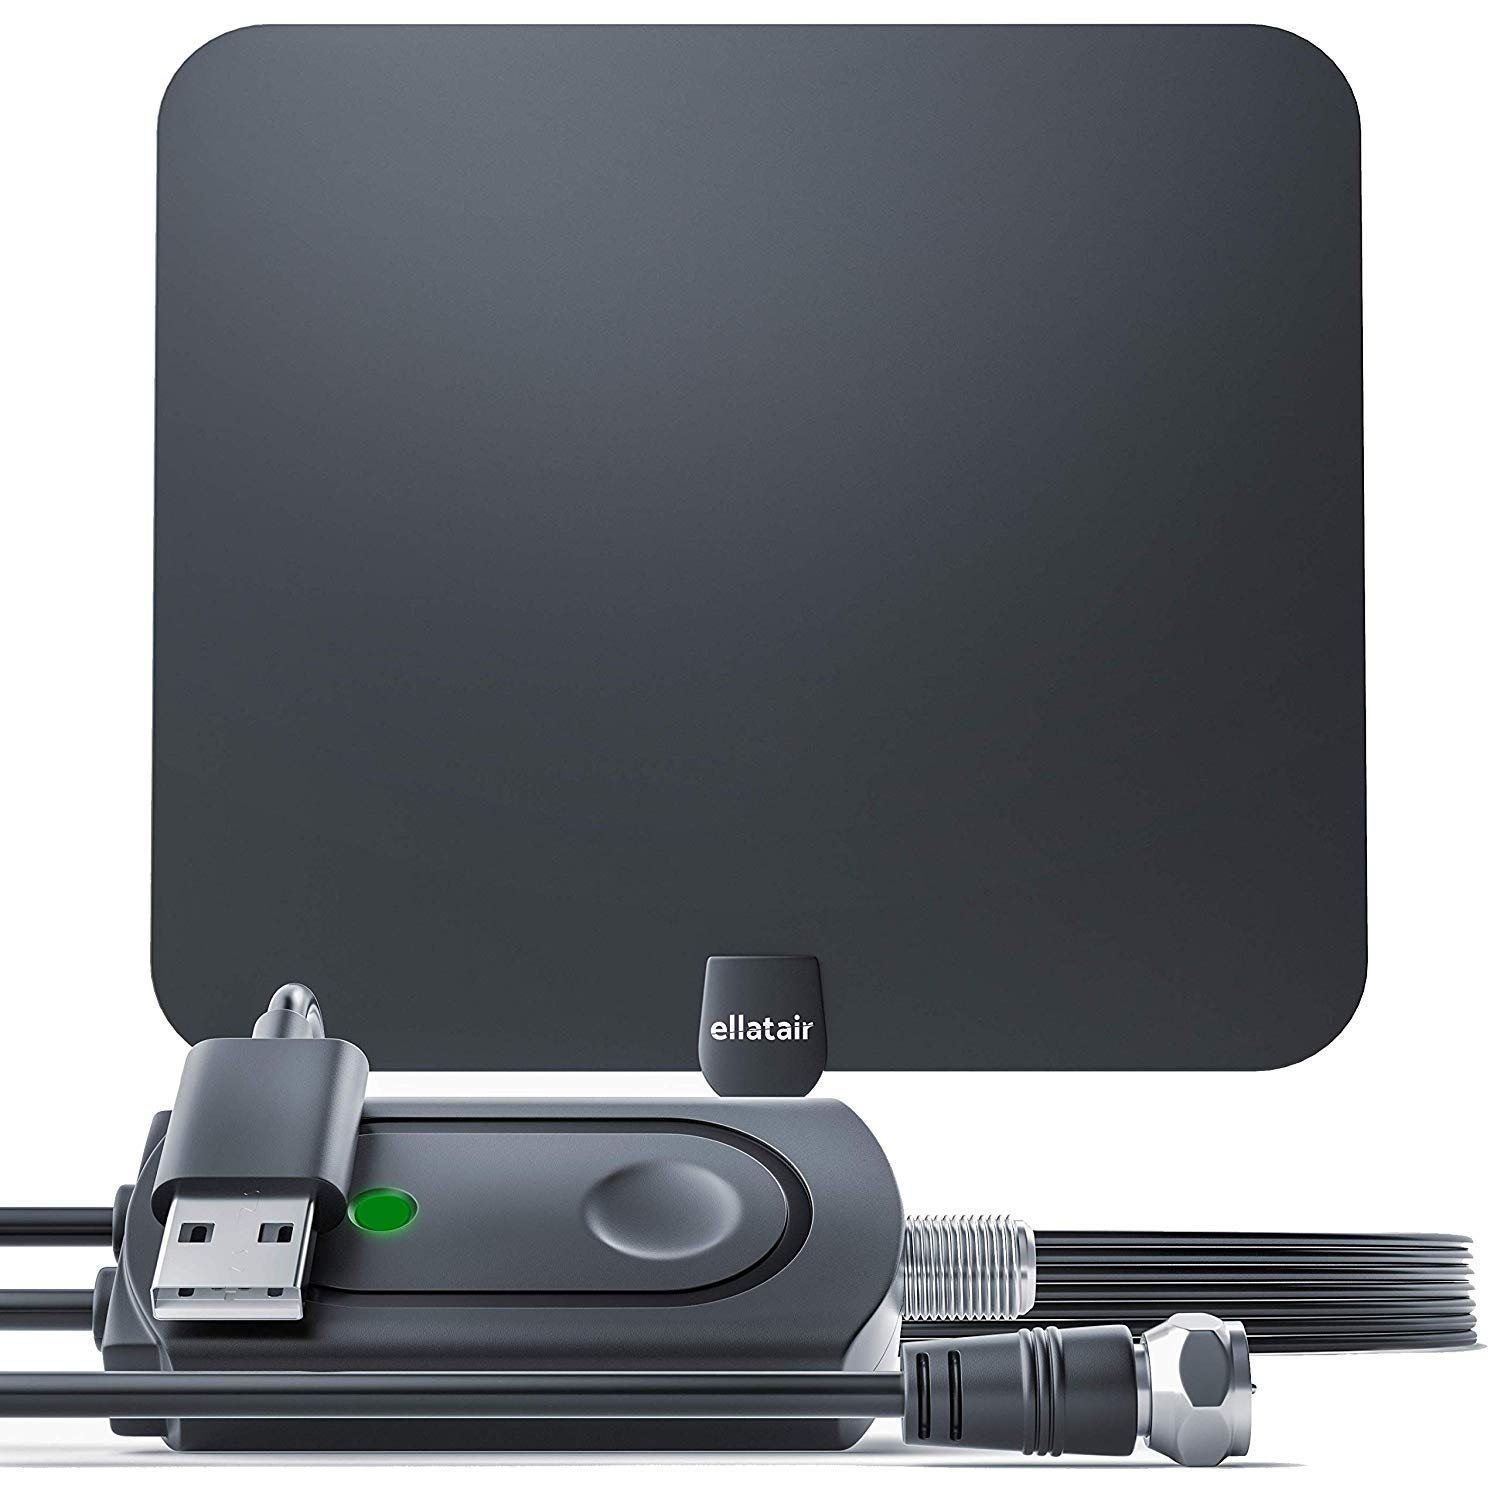 Amplified HD Digital TV Antenna All Older TVs for Indoor TV Digital HD Antenna with Signal Booster 13.2FT Coaxial Professional Version Cable Support 4K 1080P Life Local Channels 80+ Miles